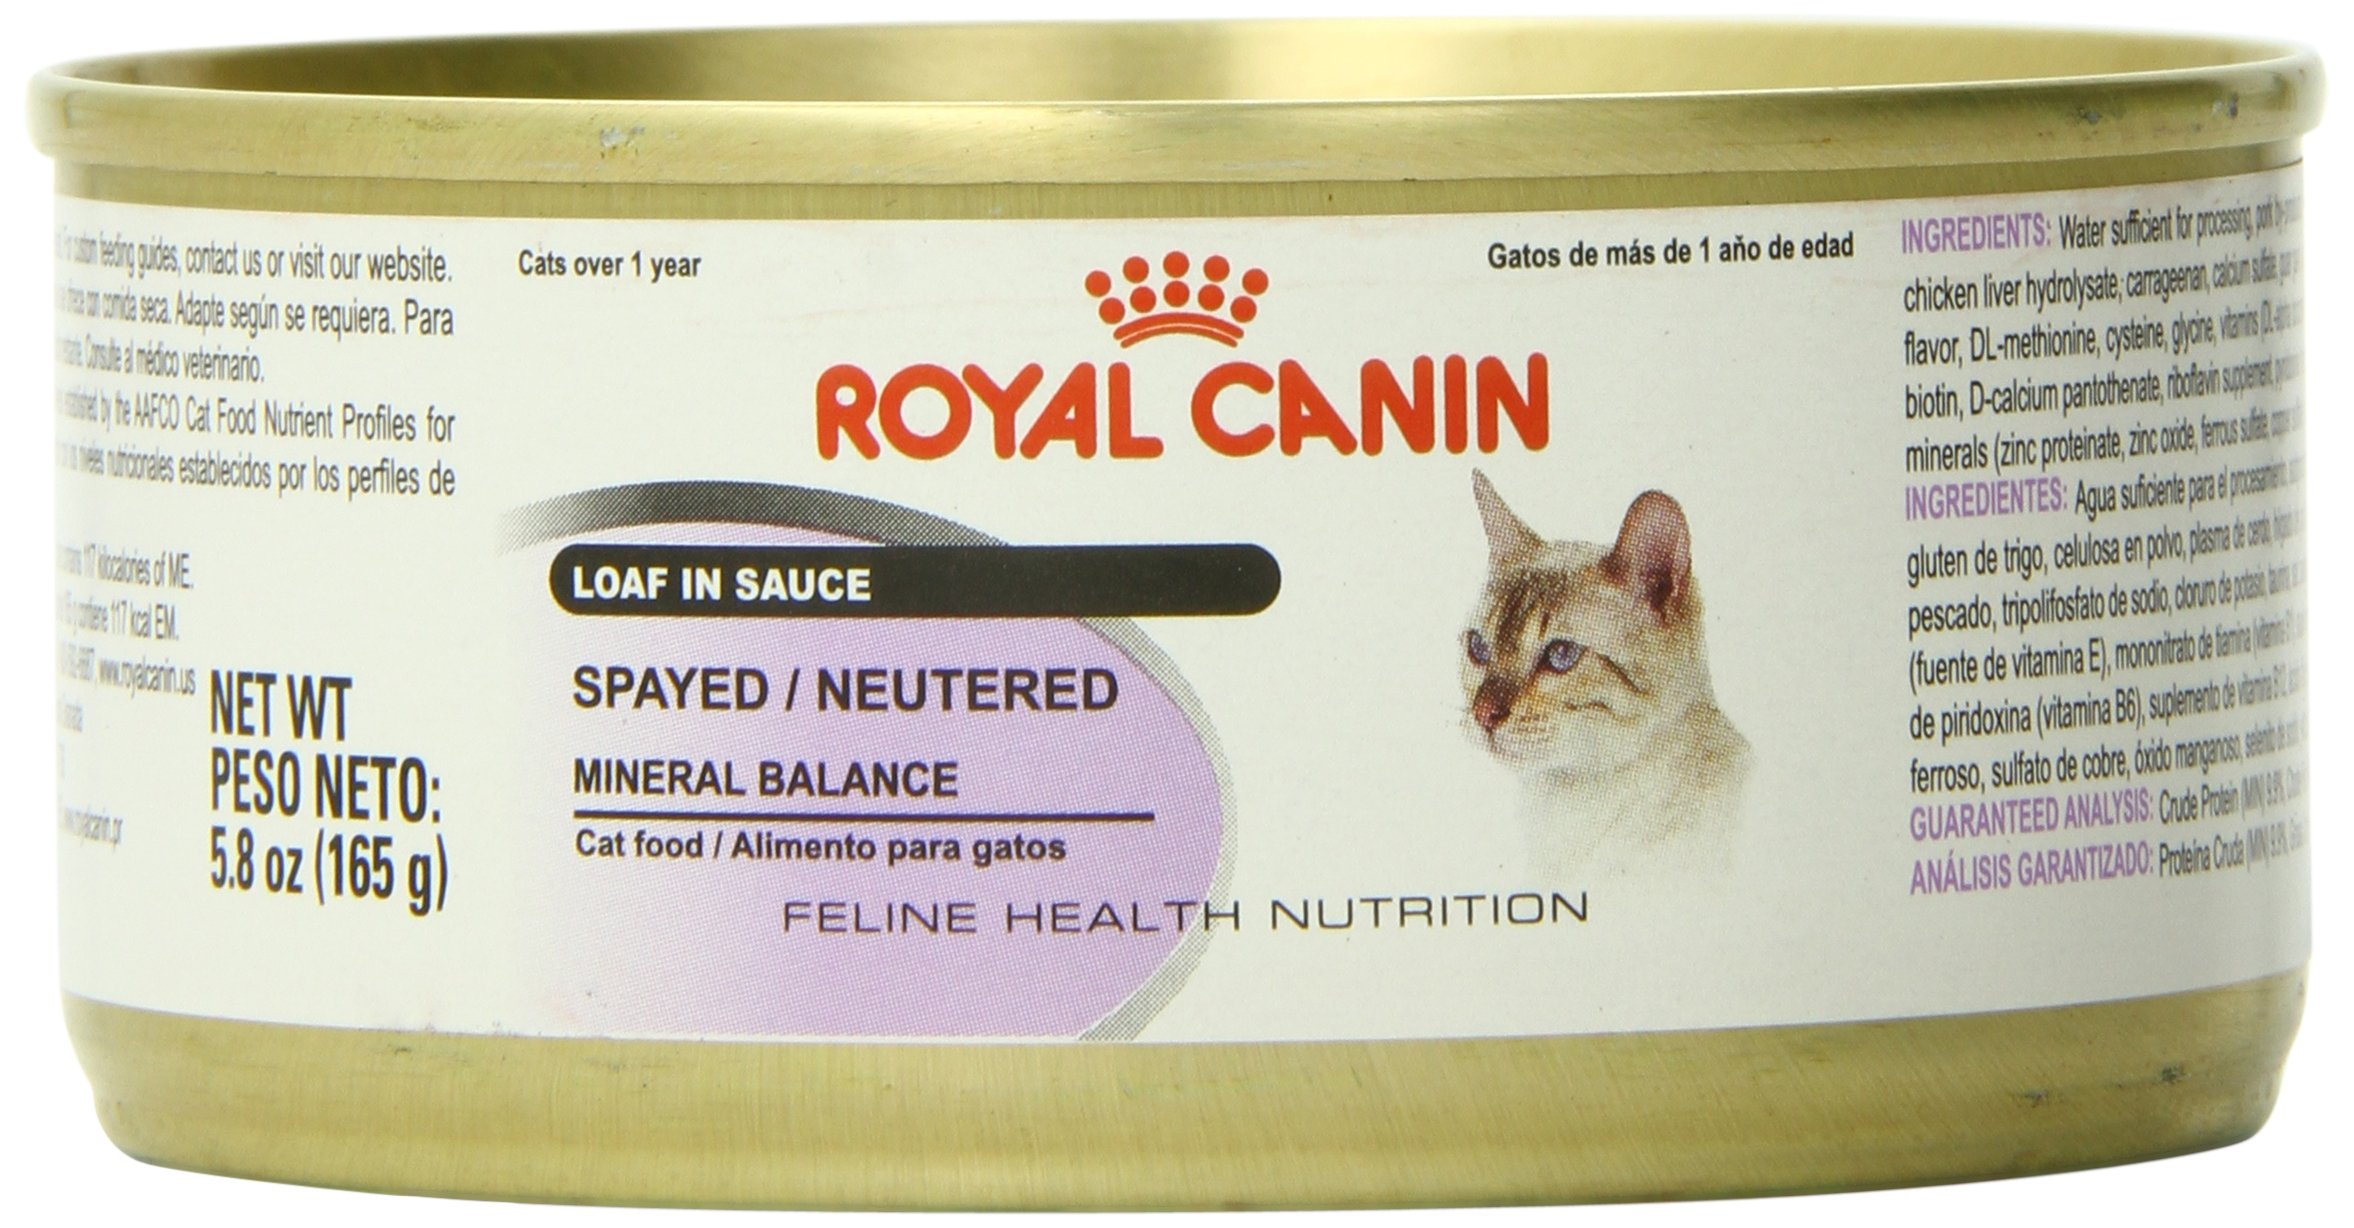 Royal Canin Feline Health Nutrition Spayed/Neutered Loaf in Sauce Canned Cat Food (24 Pack), 5.8 oz/One Size